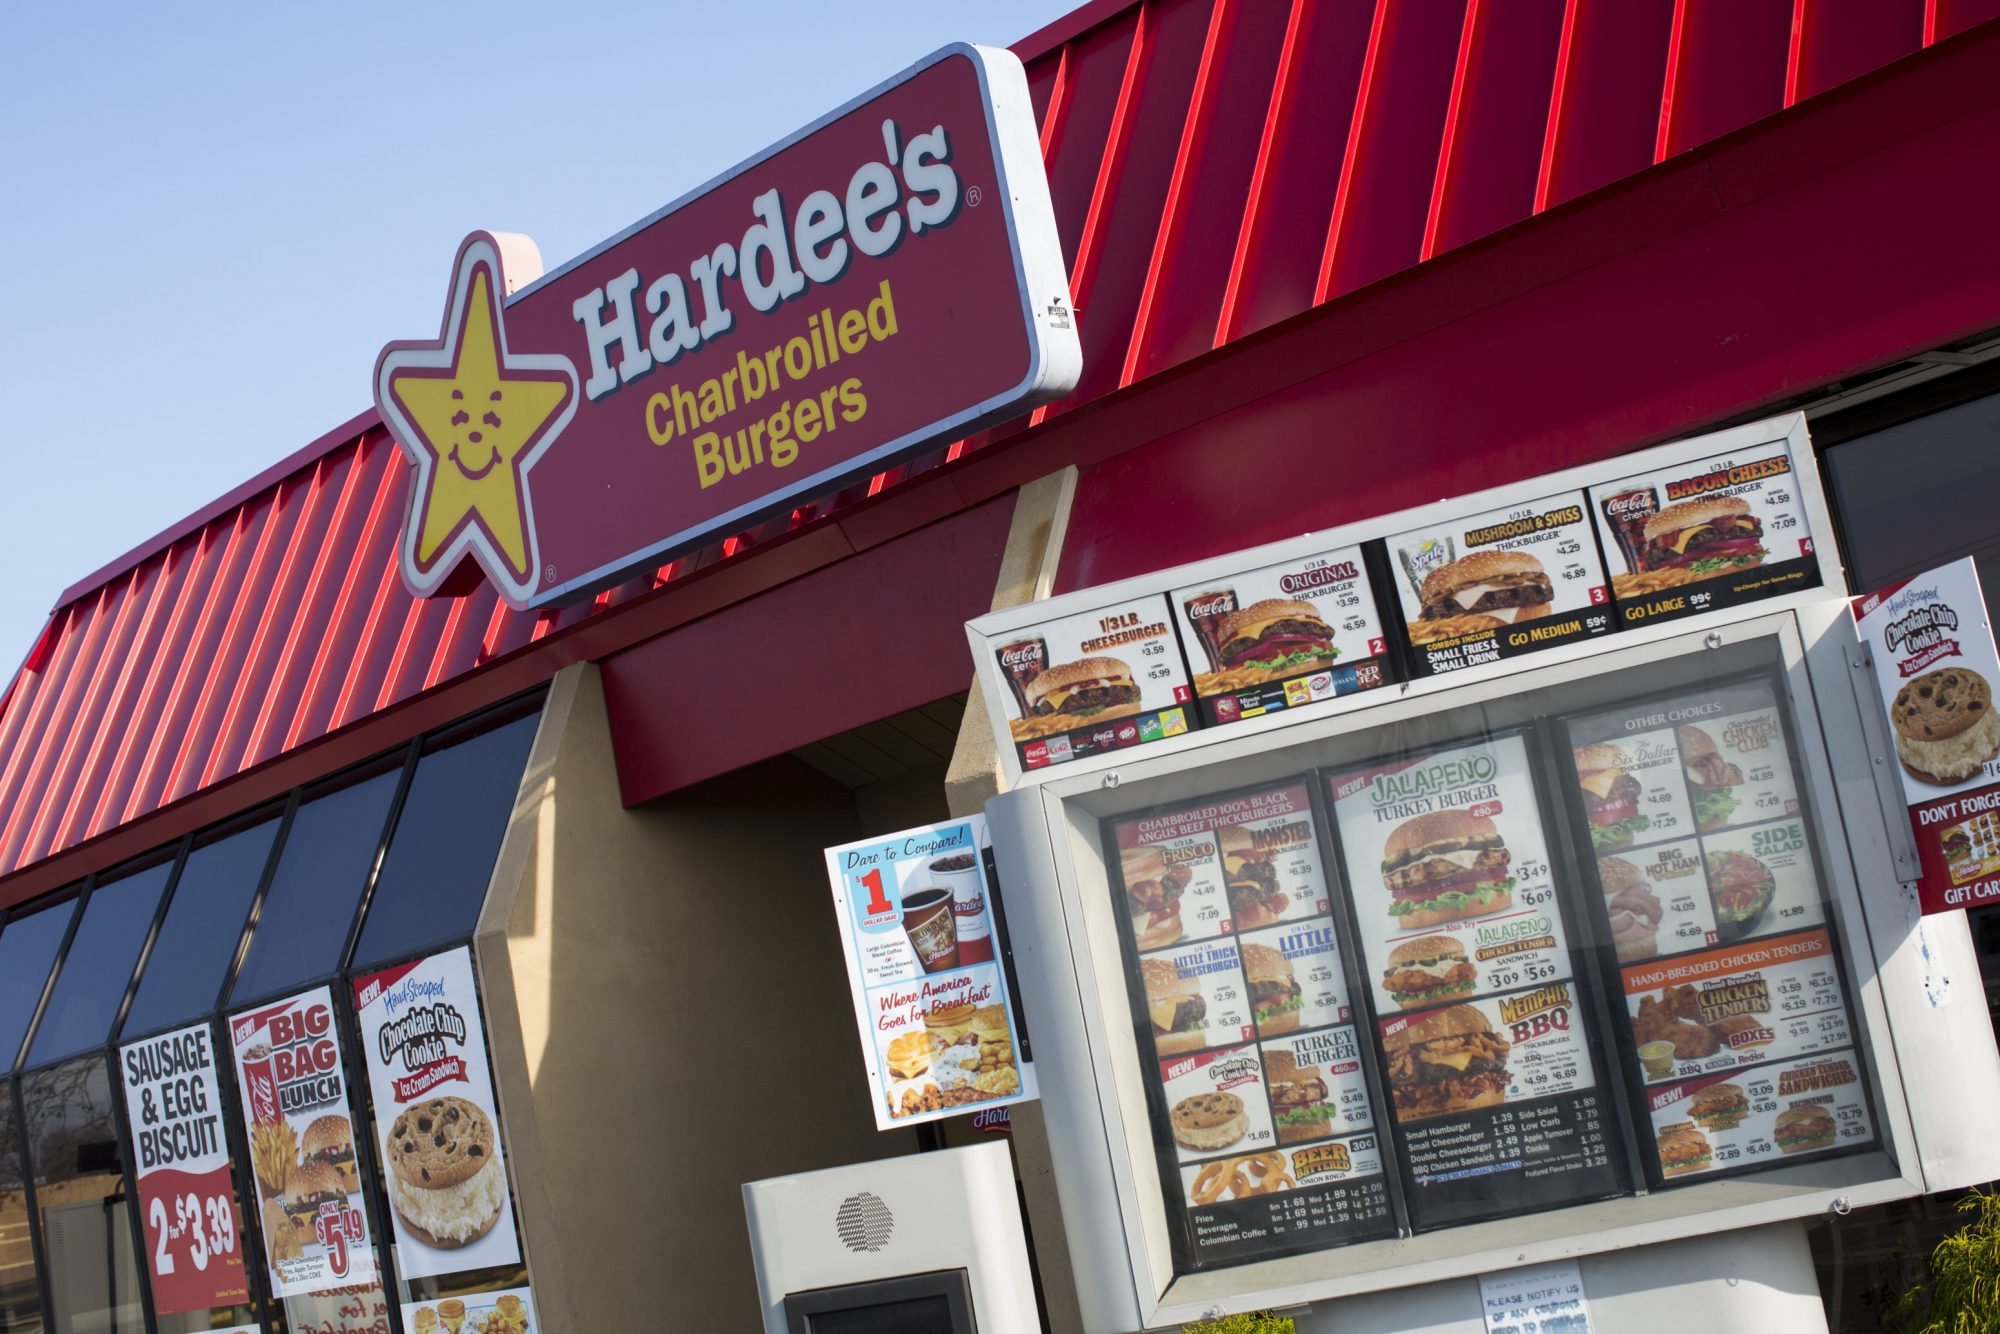 A Hardee's fast food restaurant in Milford, Delaware, December 25, 2012.